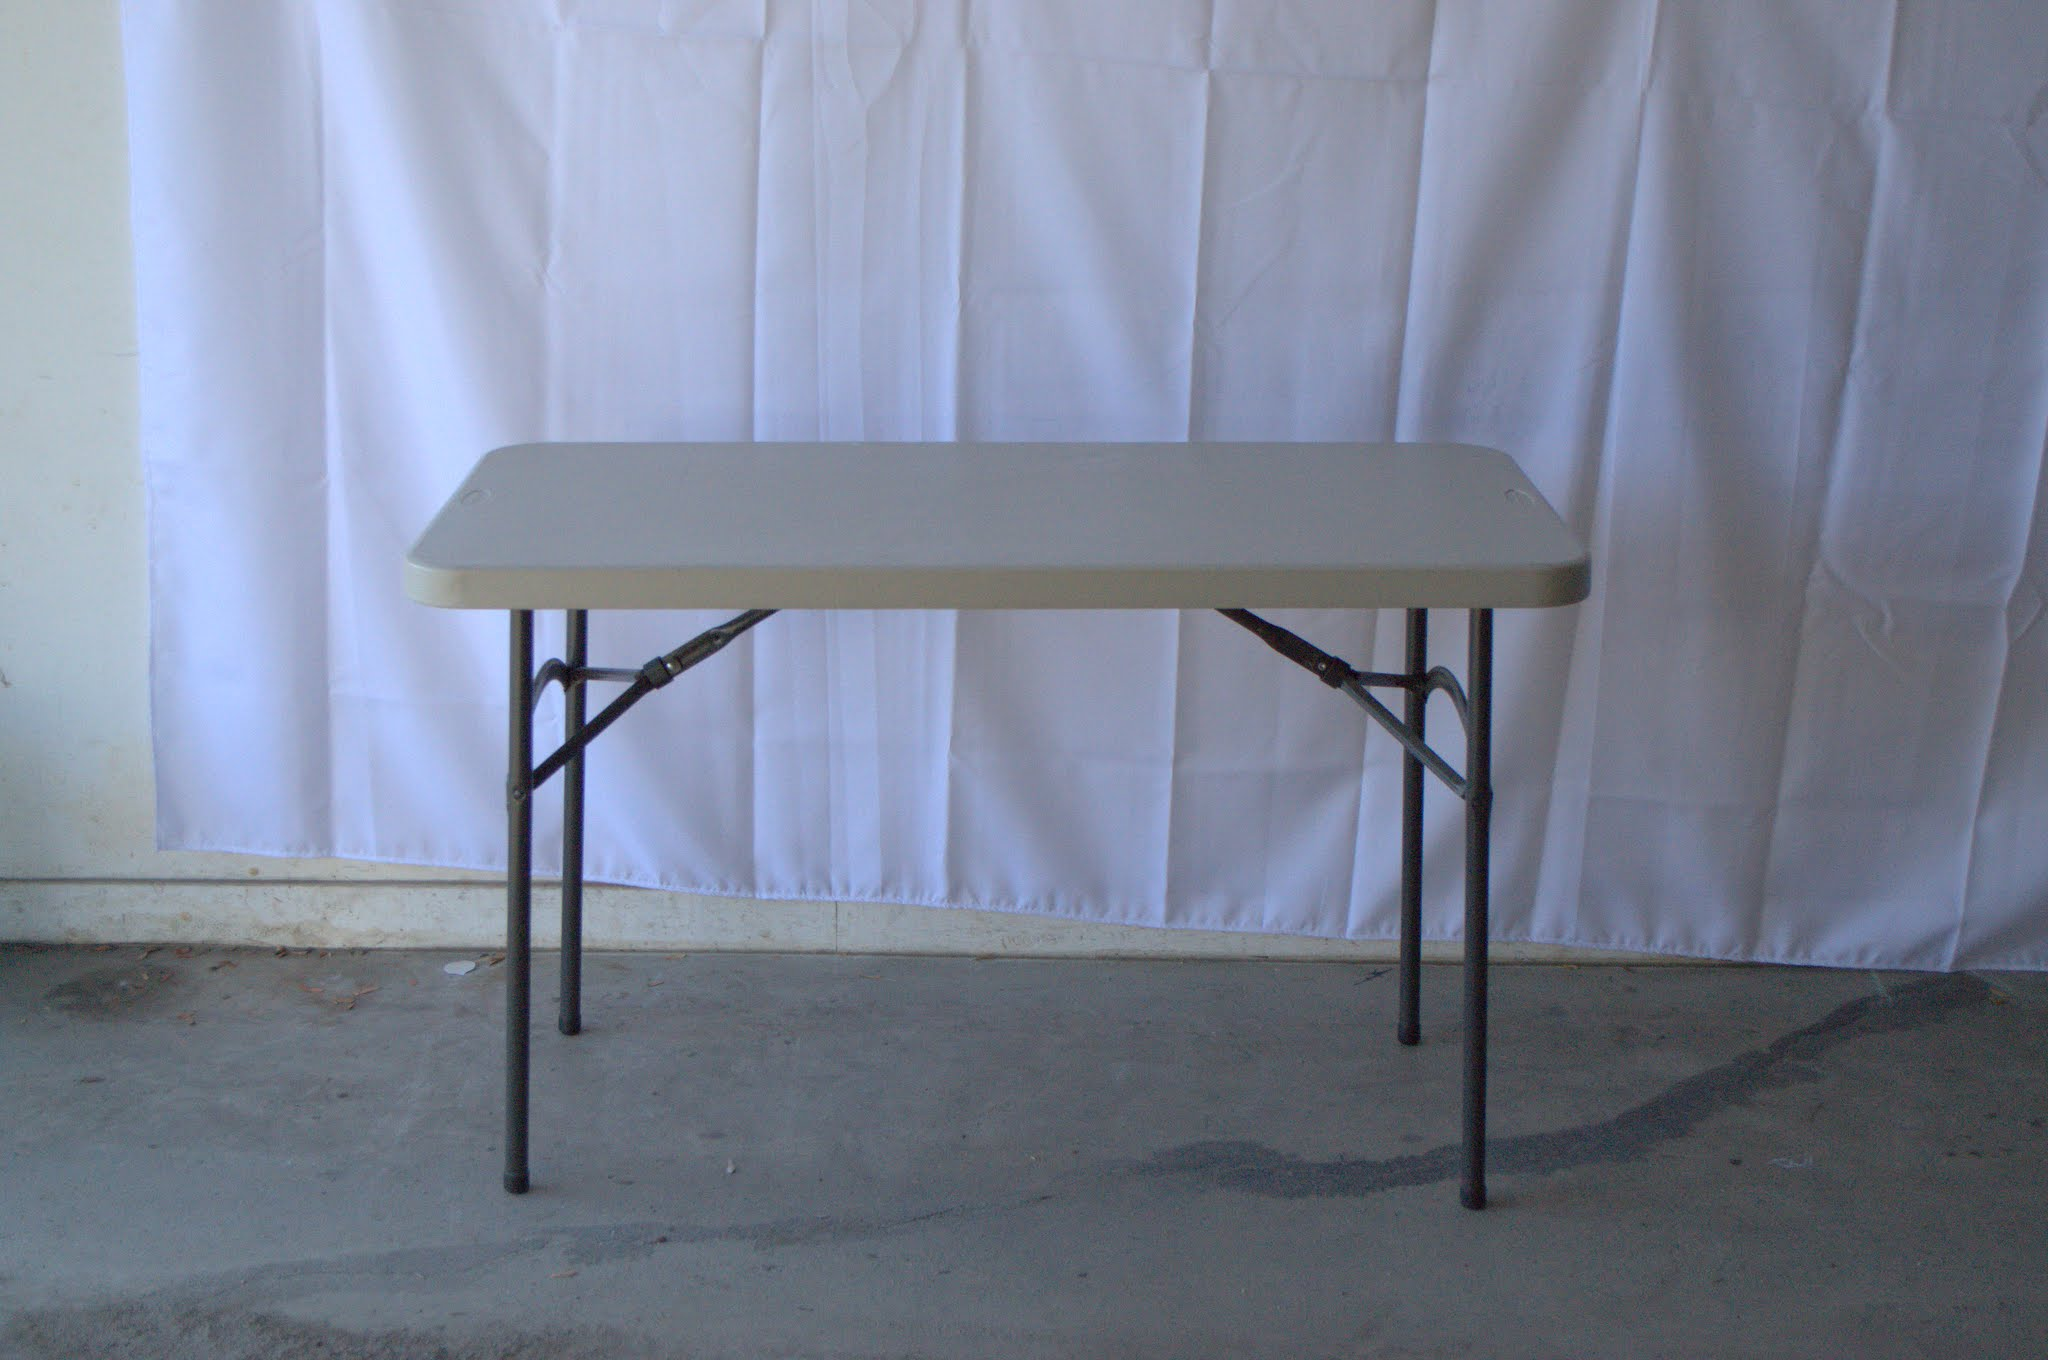 4ft Banquet Table Seats 4 6 Use As Gift Table, Guest Book Table, Drink Table,  Small Serving Table, Dinnerware Table, Etc